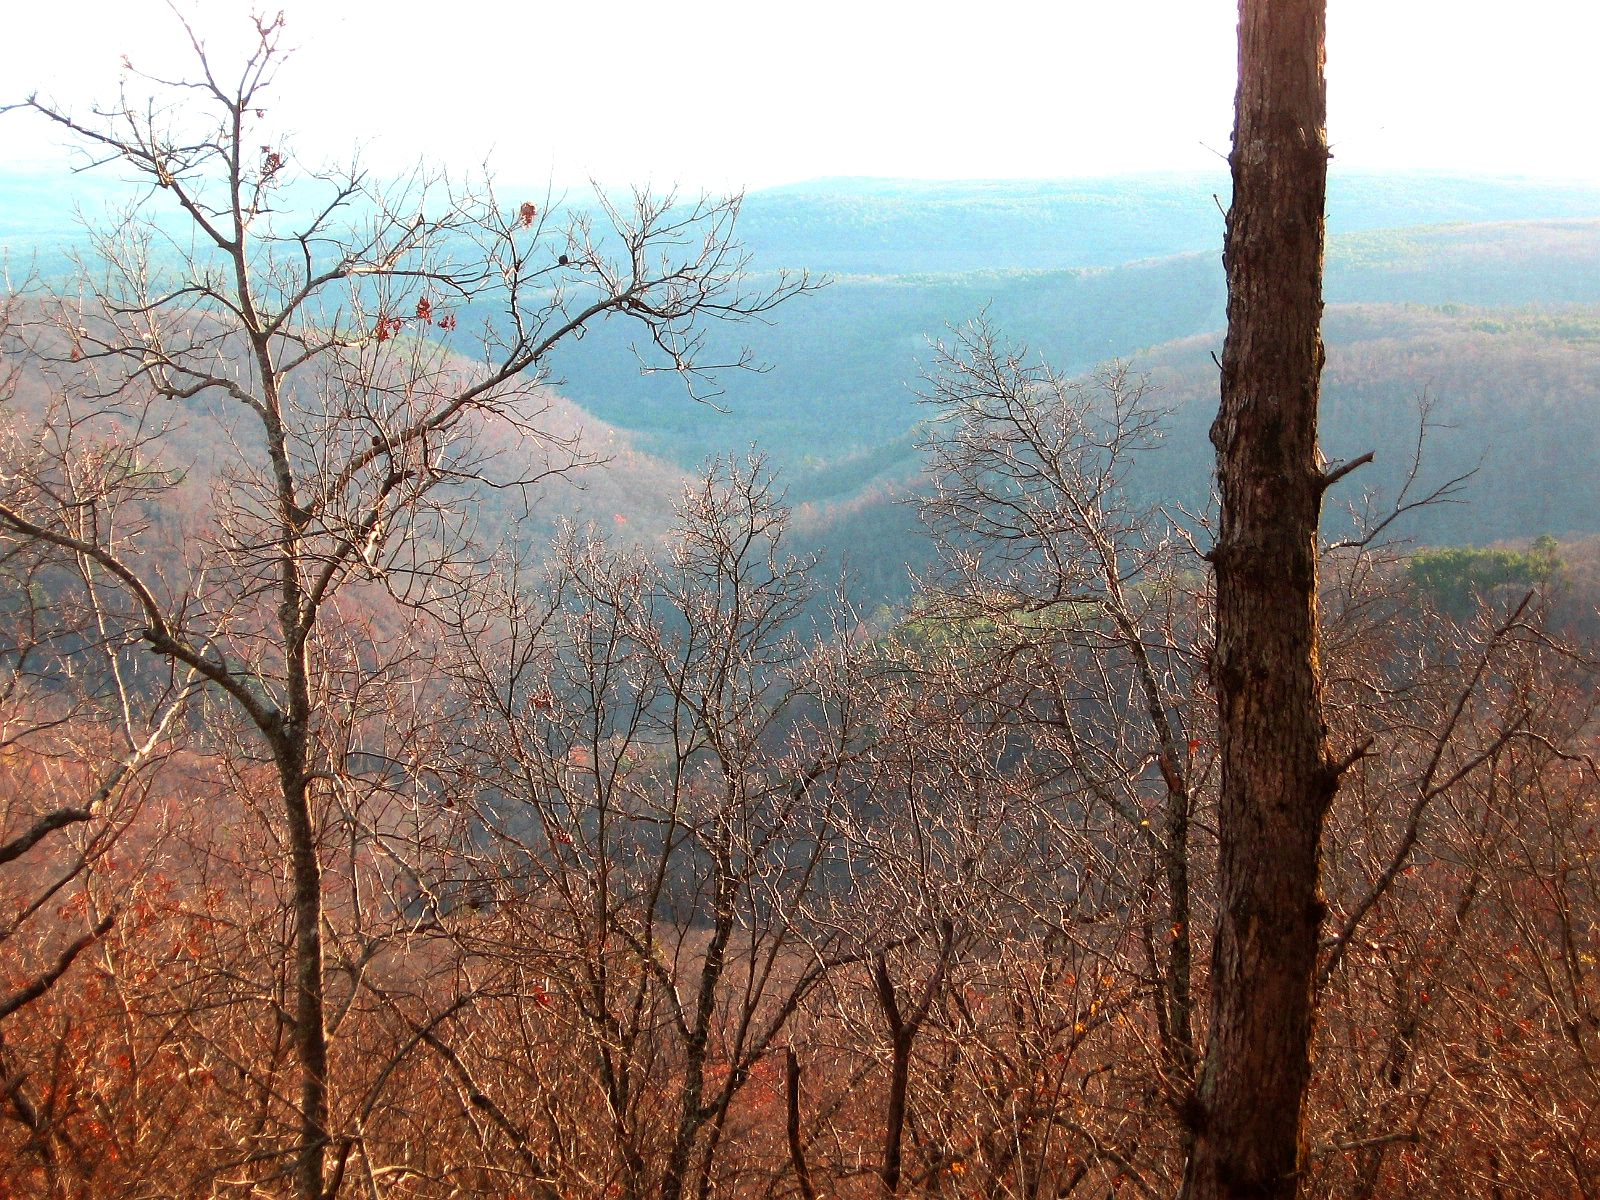 White Rock Mountain, Boston Mountain within the Ozarks in Arkansas. View from our cabin.